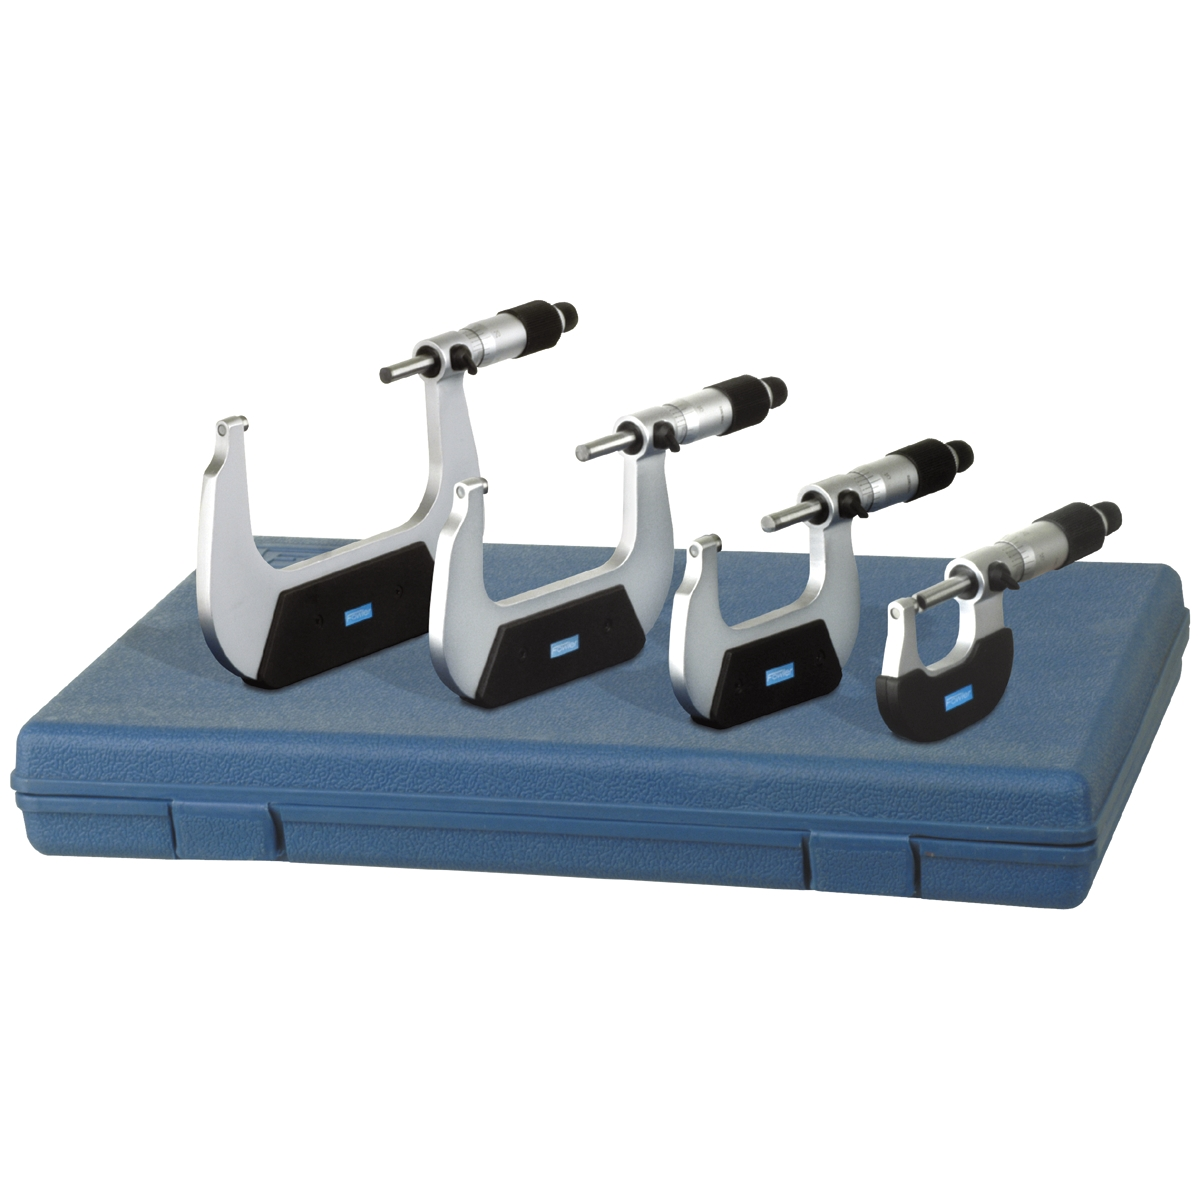 0-100mm Outside Met. Micrometer Set